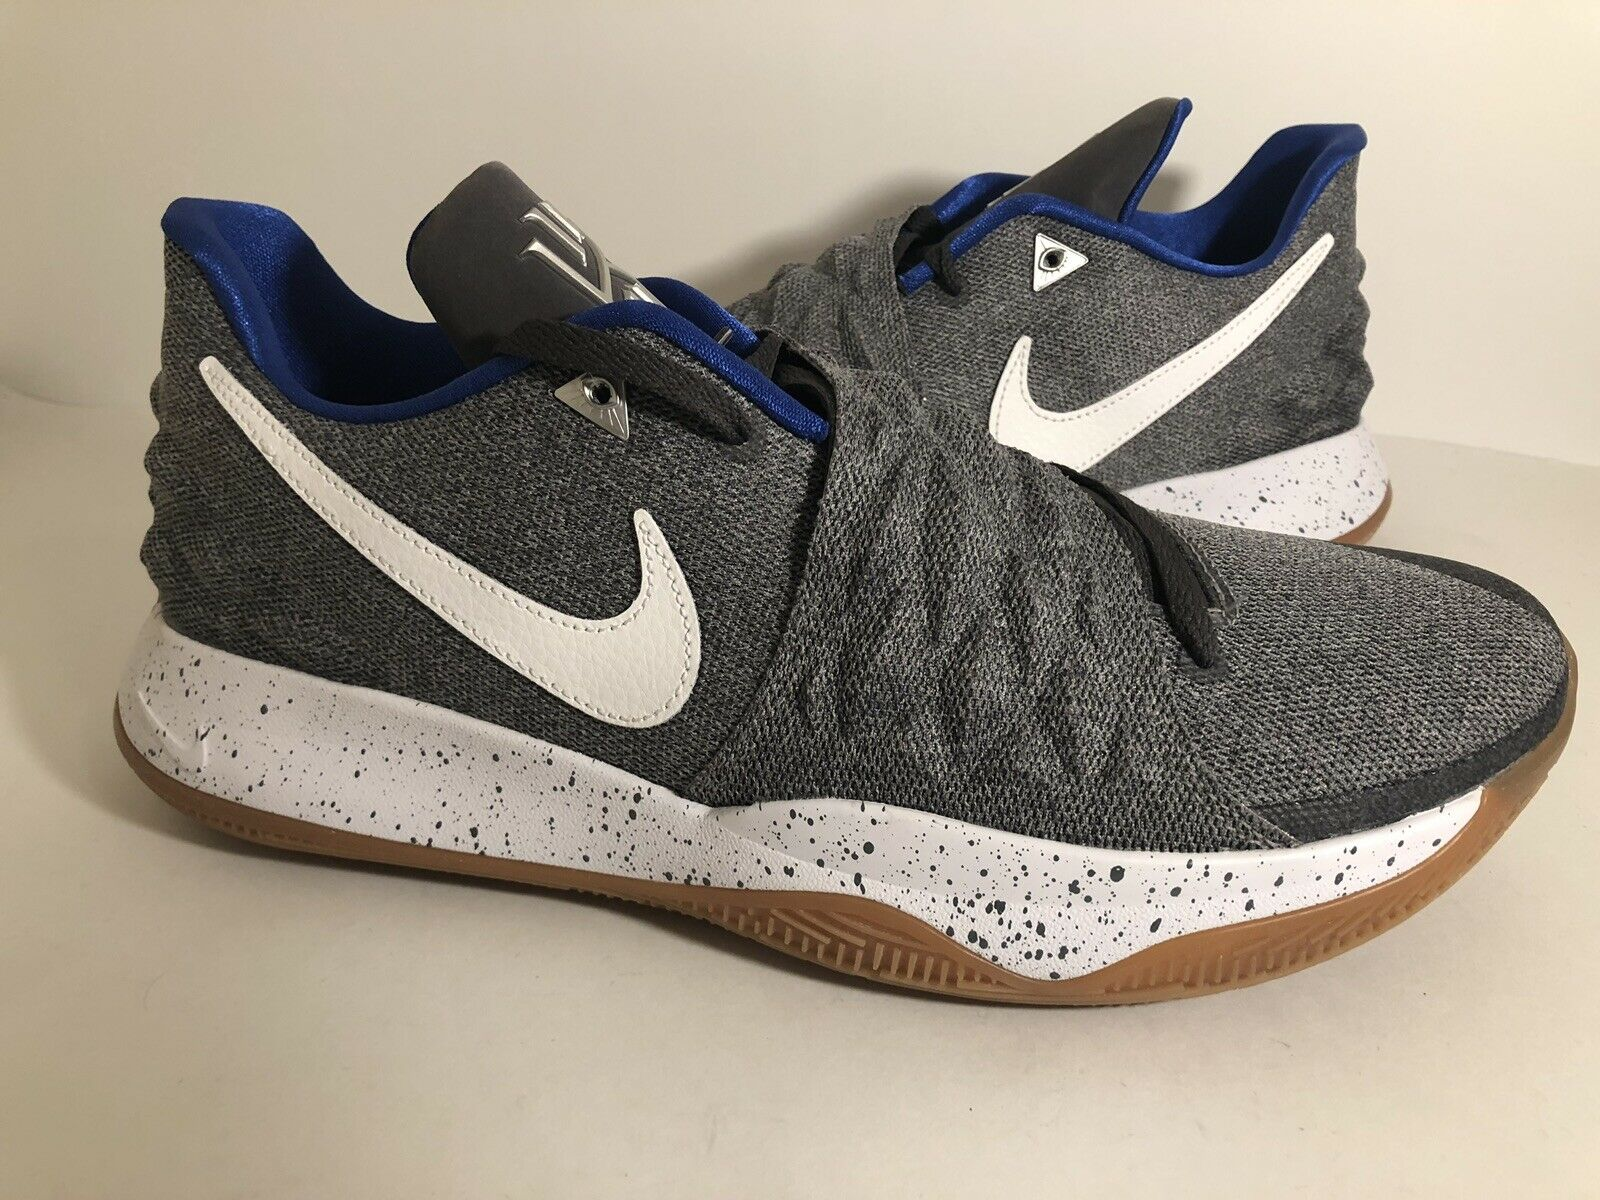 5b7e3e7f1c11 Kyrie Low Uncle Drew QS Mens Basketball shoes Size 13 New AO8979-005 Nike  nqenlq2184-Athletic Shoes - slippers.radiantmakeupla.com